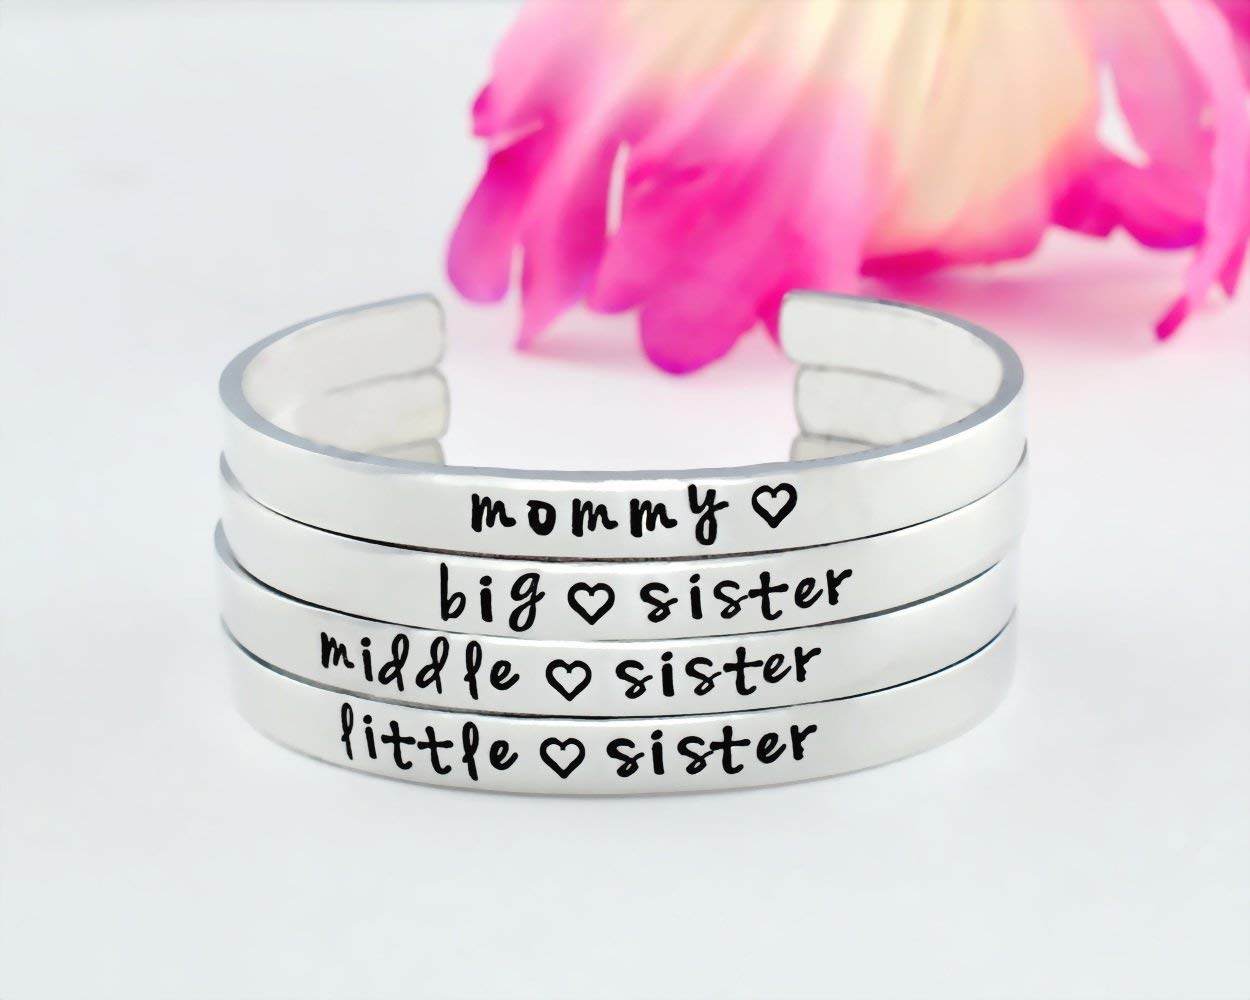 Mommy Big Middle Little Sister - Hand Stamped Aluminum Cuff Bracelets Set of 4, Mom Daughter Big Mid LiL Sis Jewelry, Family Love Mother's Day Personalized Gifts, V1